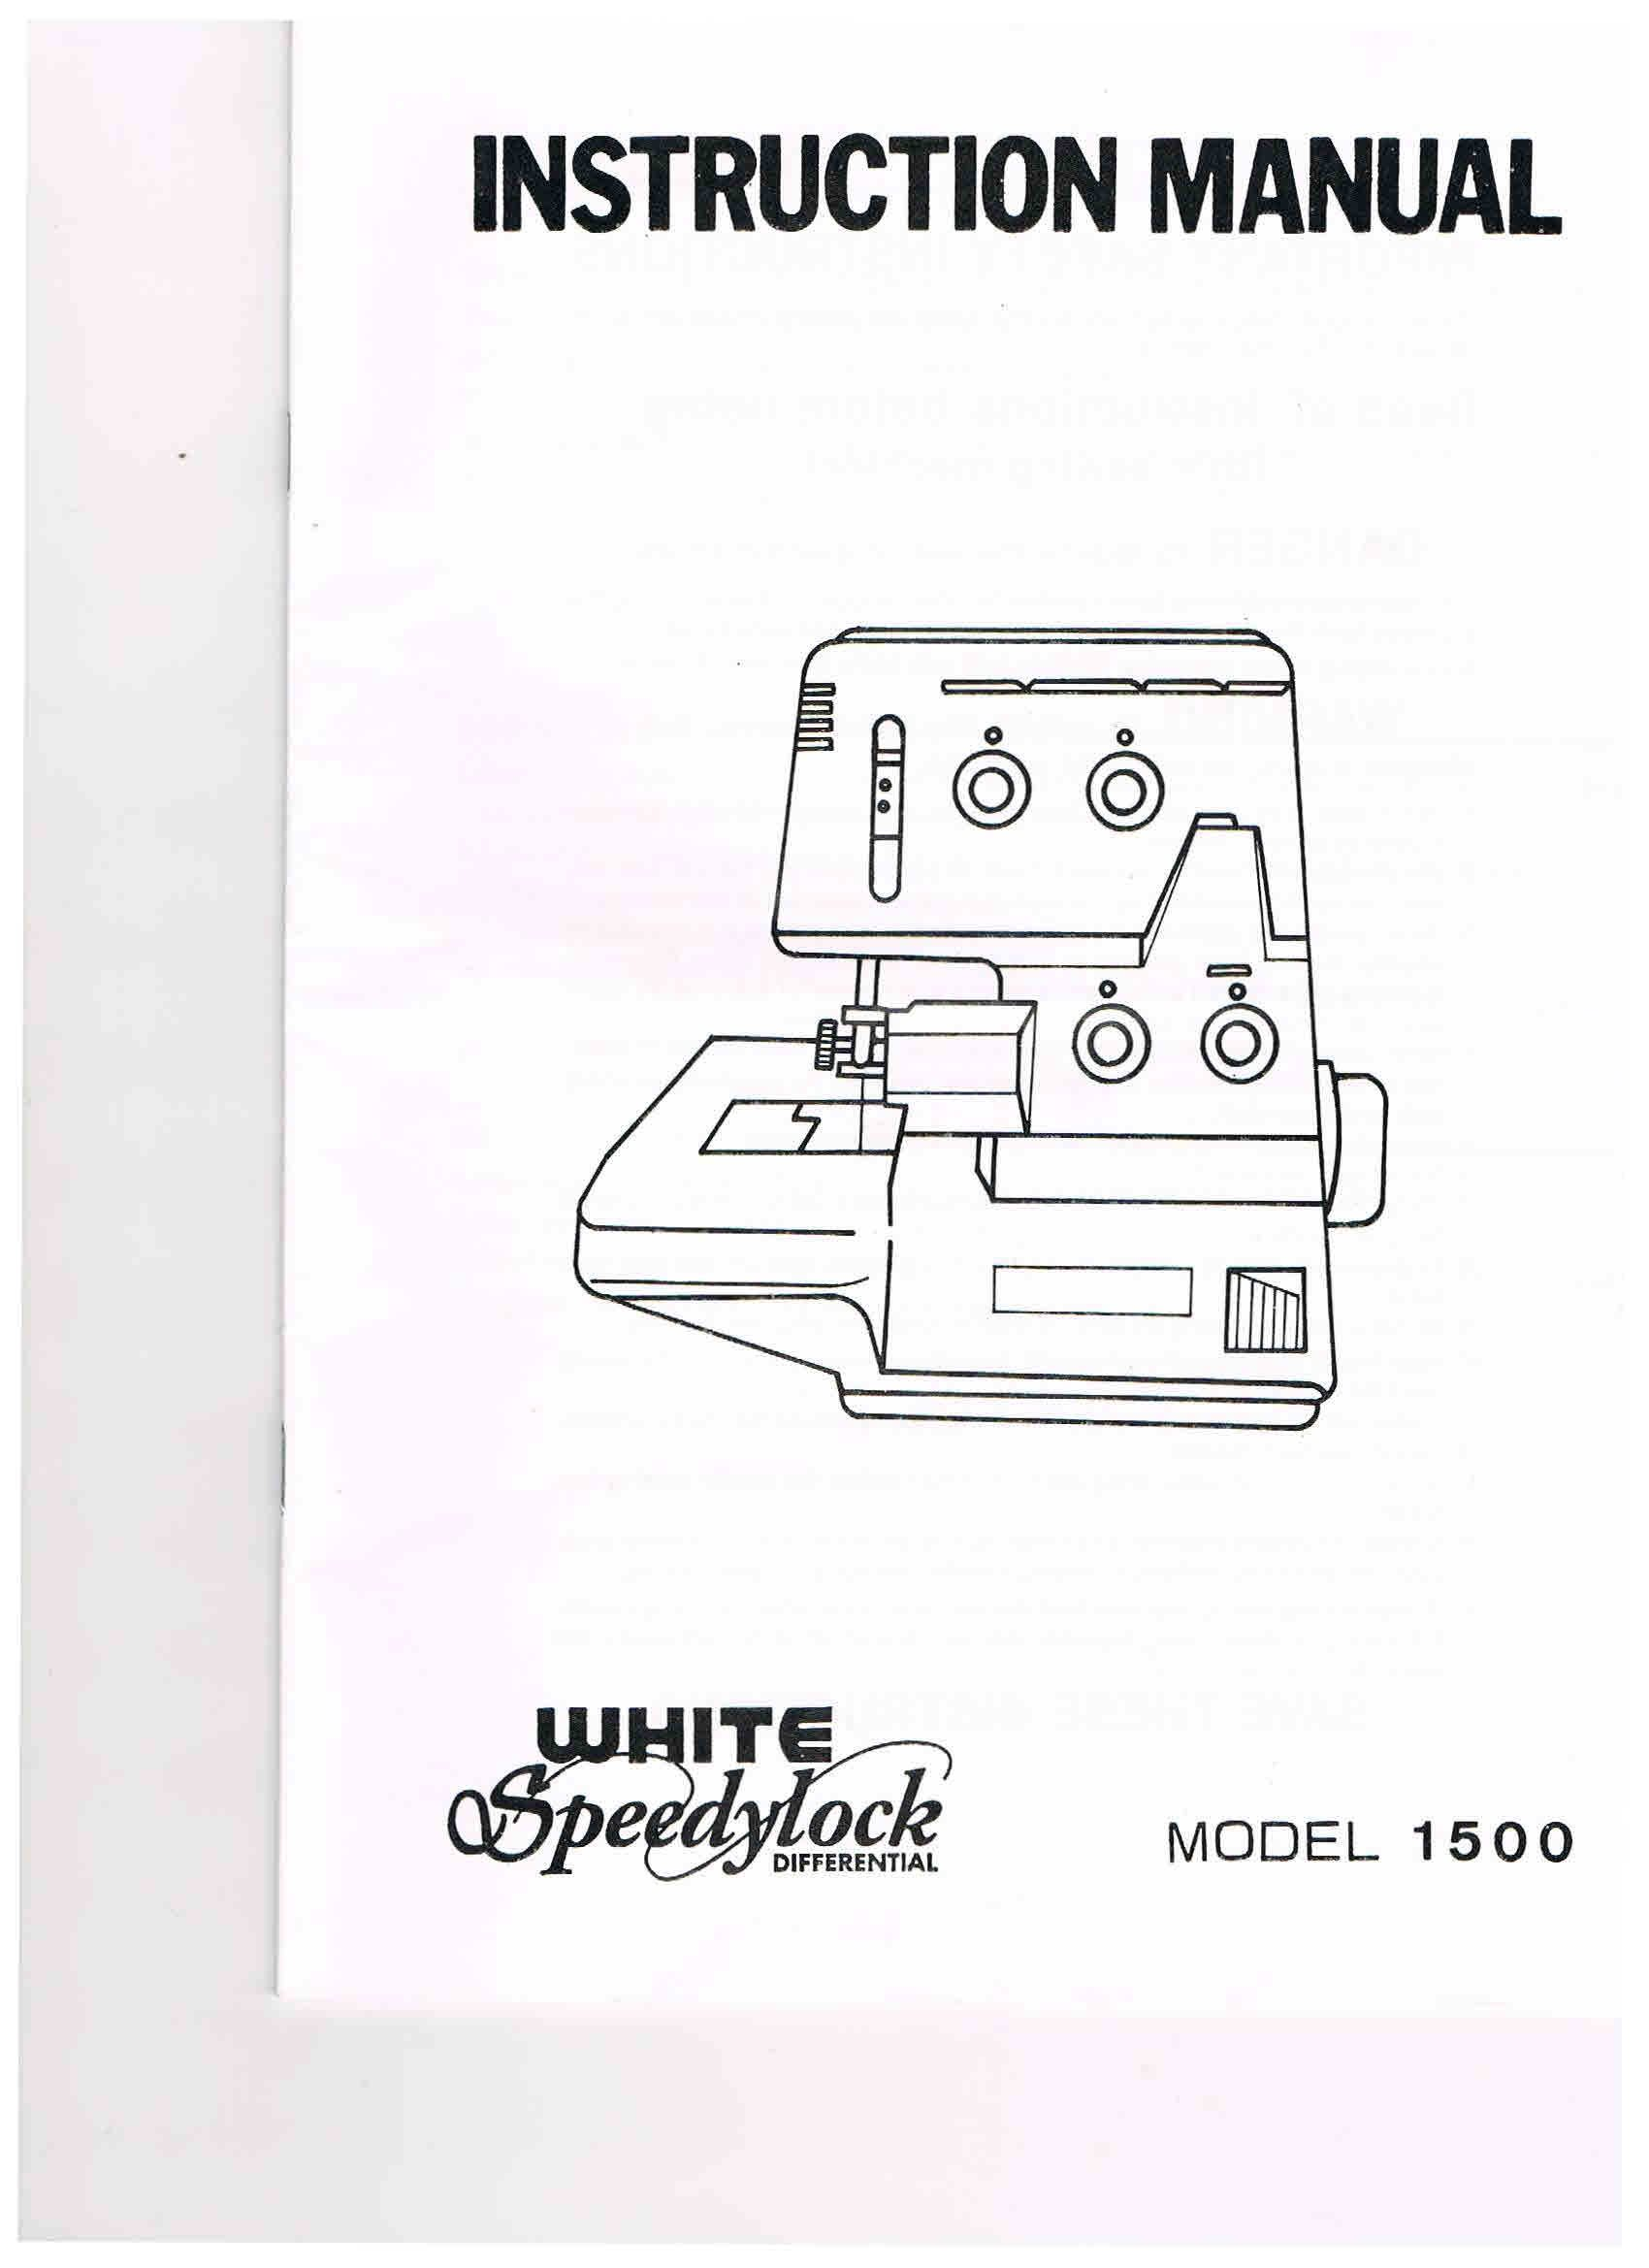 White Speedylock Differential Model 1500 Instruction Manual: White:  Amazon.com: Books